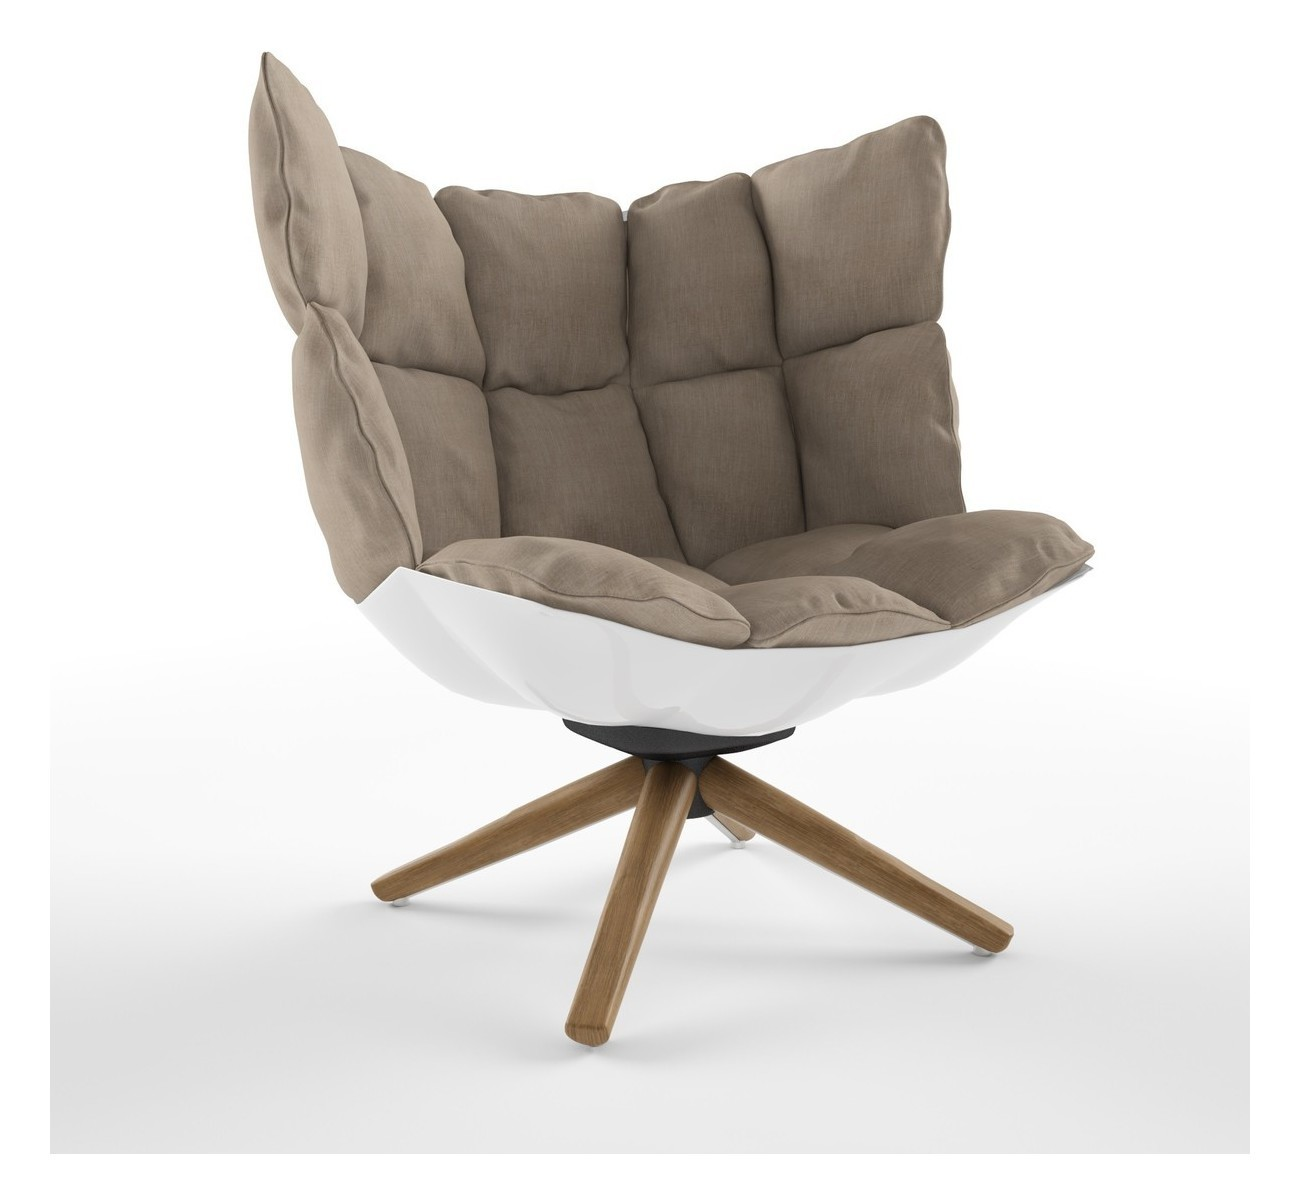 Husk Outdoor Chair